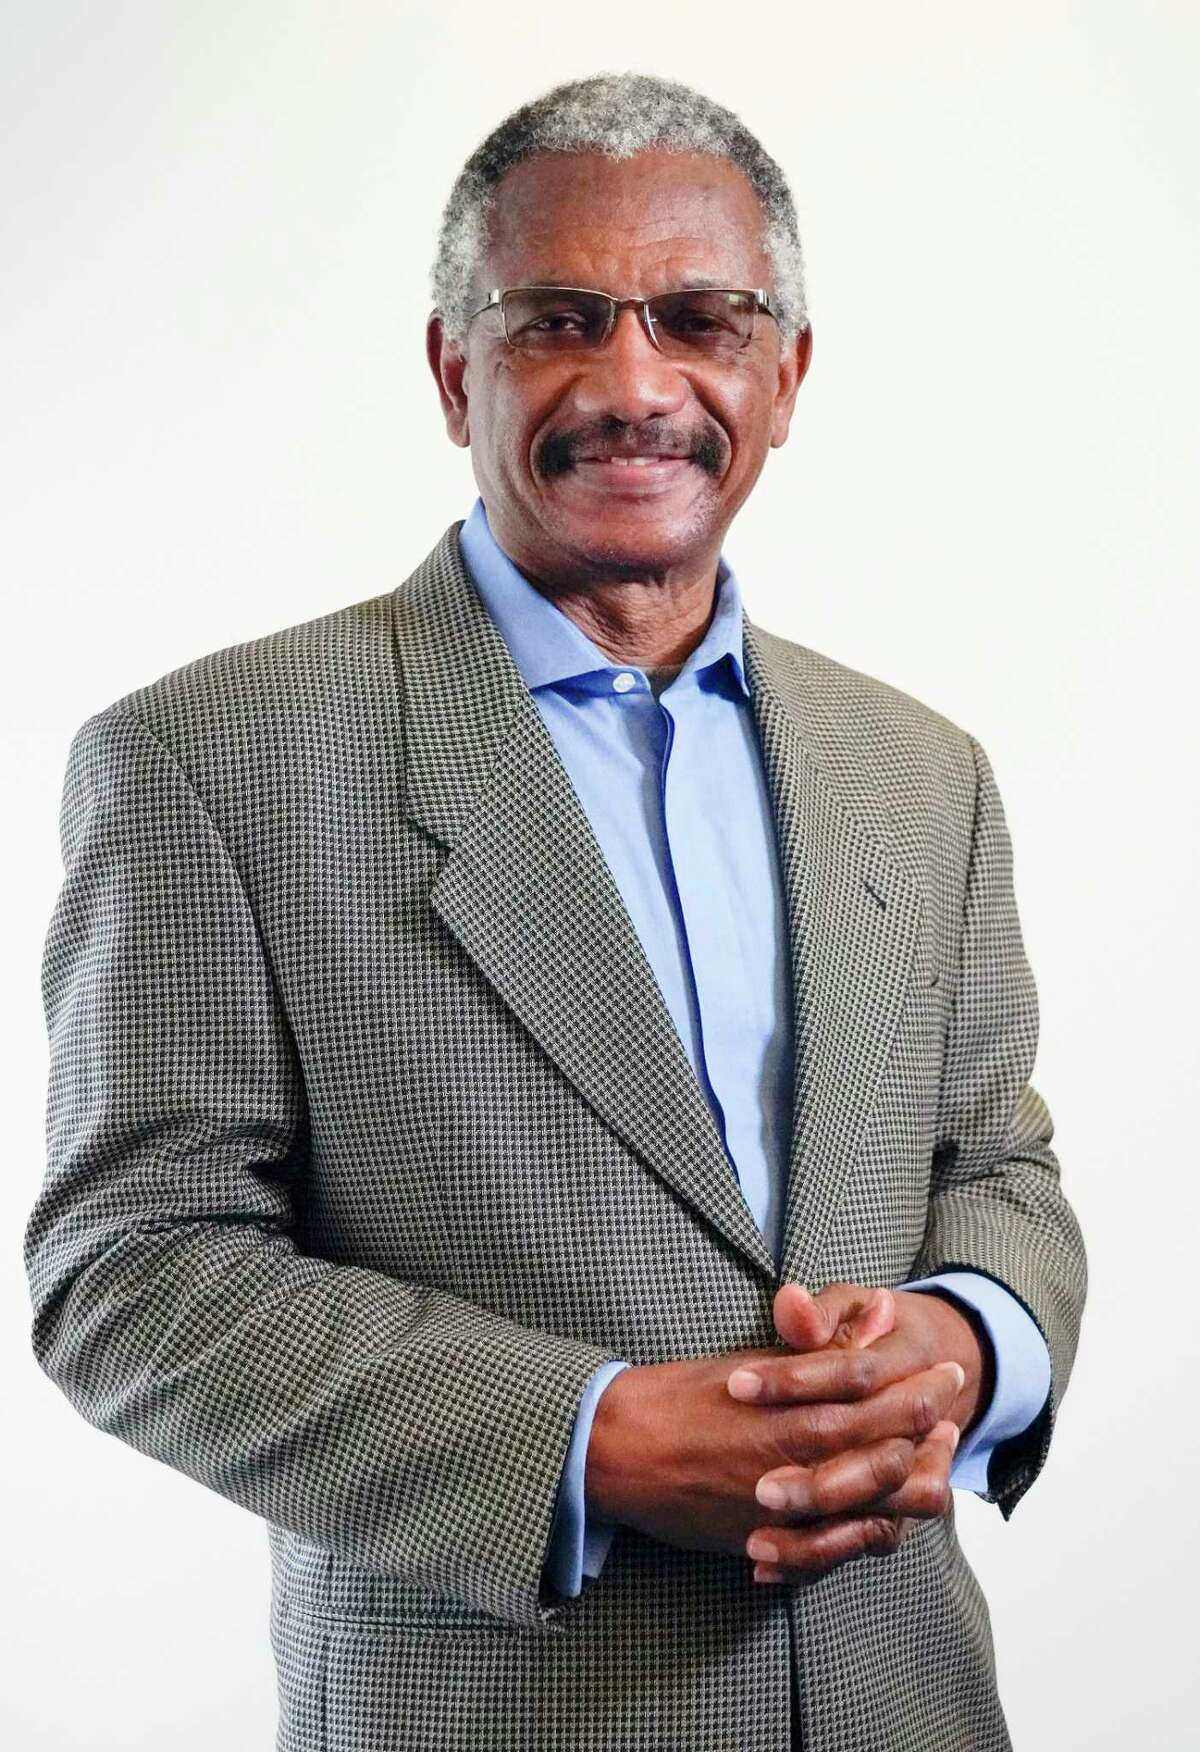 Harold V. Dutton Jr., candidate for State Rep 142 (D).